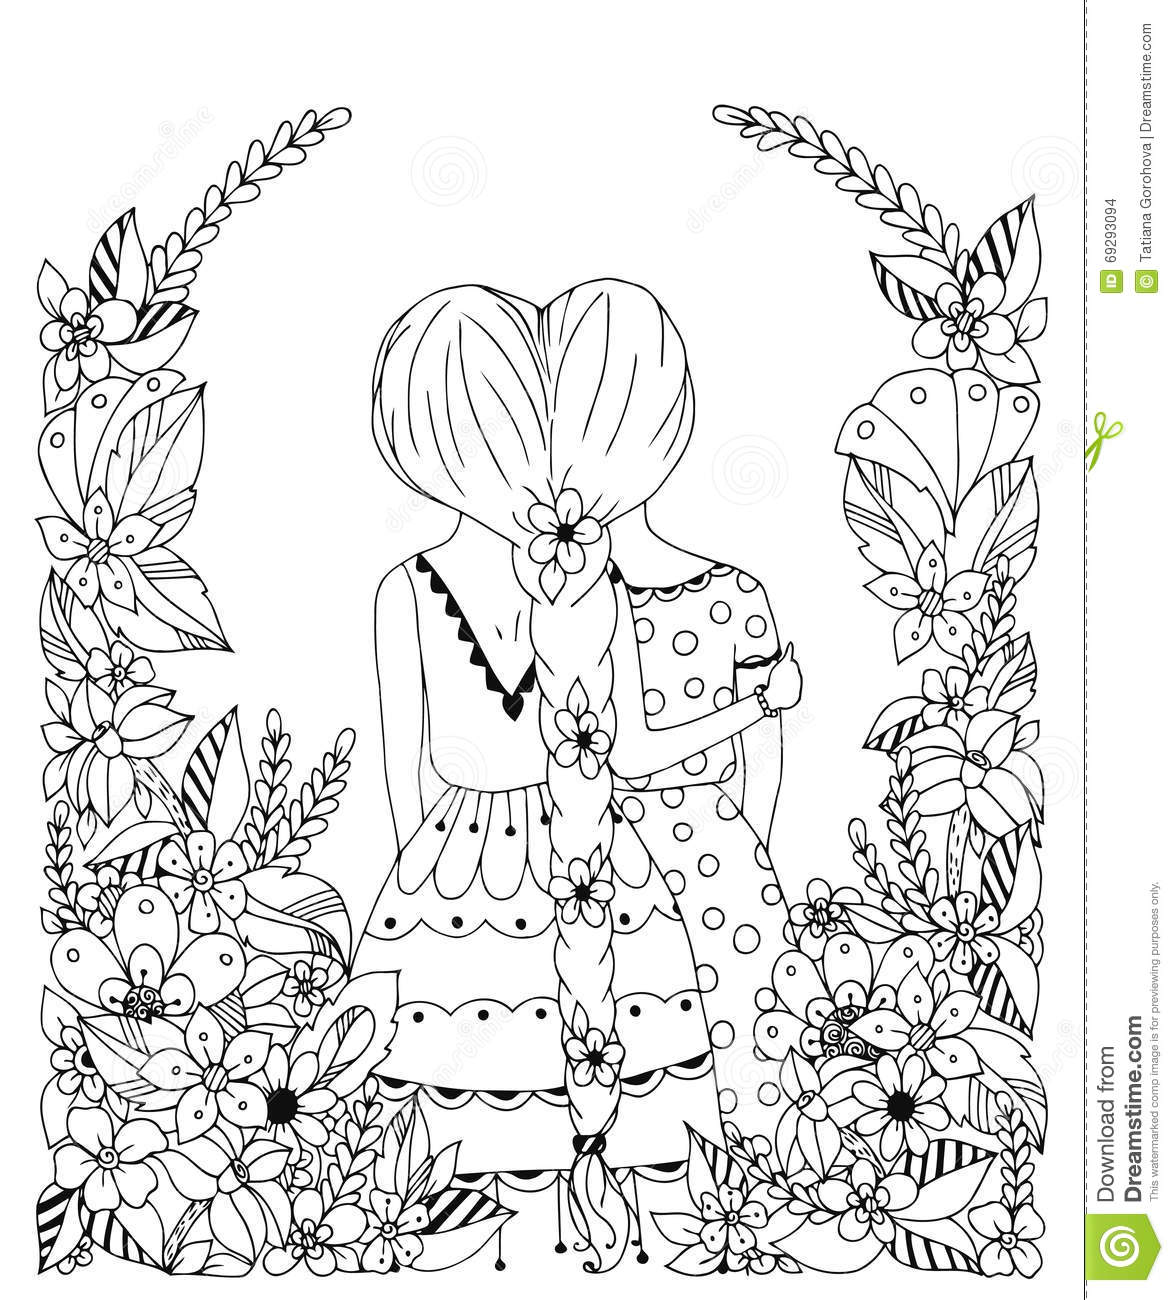 coloring pages about friendship - vector illustration zentangl girl friend in a flower frame doodle flowers spit back hugs